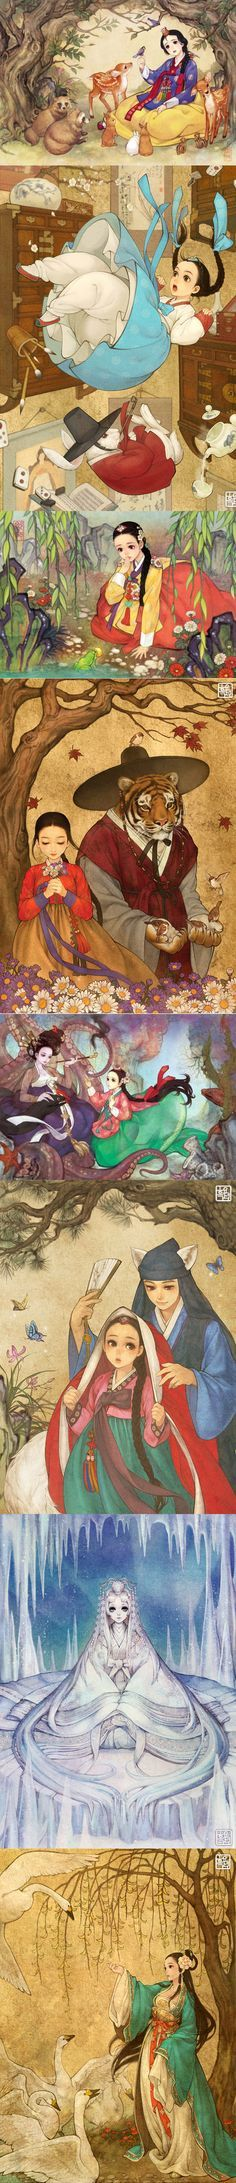 Korean illustrator, Na Young Wu (also known as @00obsidian00 on Twitter), gives Western fairy tales a whimsical Eastern makeover ~ Snow White, Alice in Wonderland, Princess and the Frog, Beauty and the Beast, Little Mermaid, Little Red Riding Hood, Frozen, and Swan Princess.